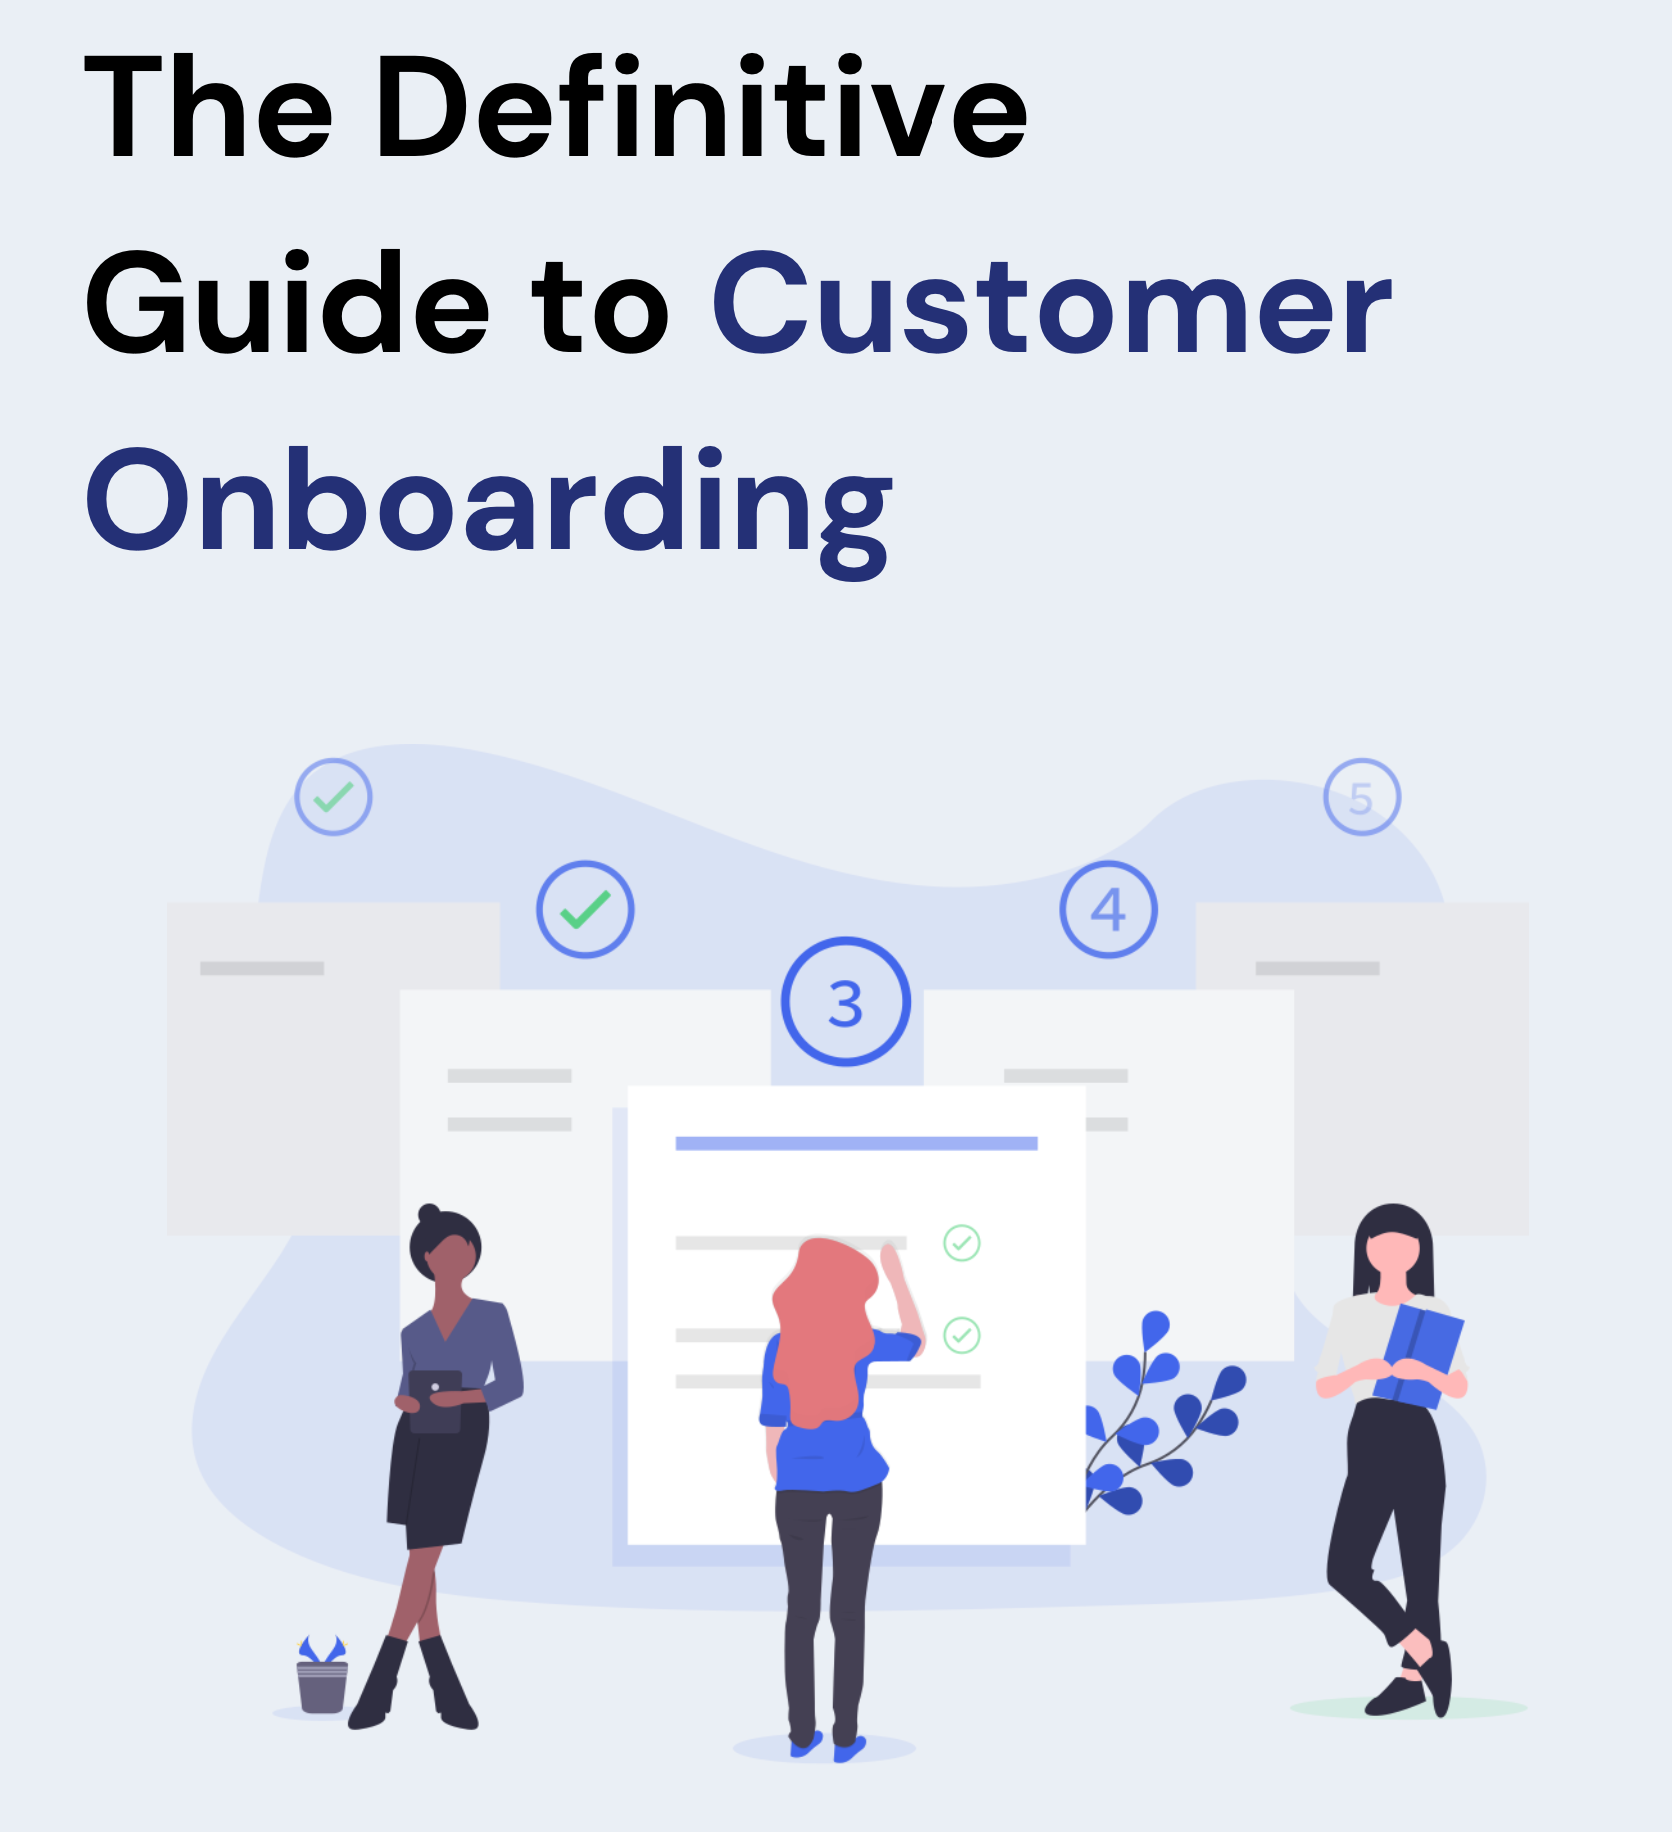 The Definitive Guide To Customer Onboarding